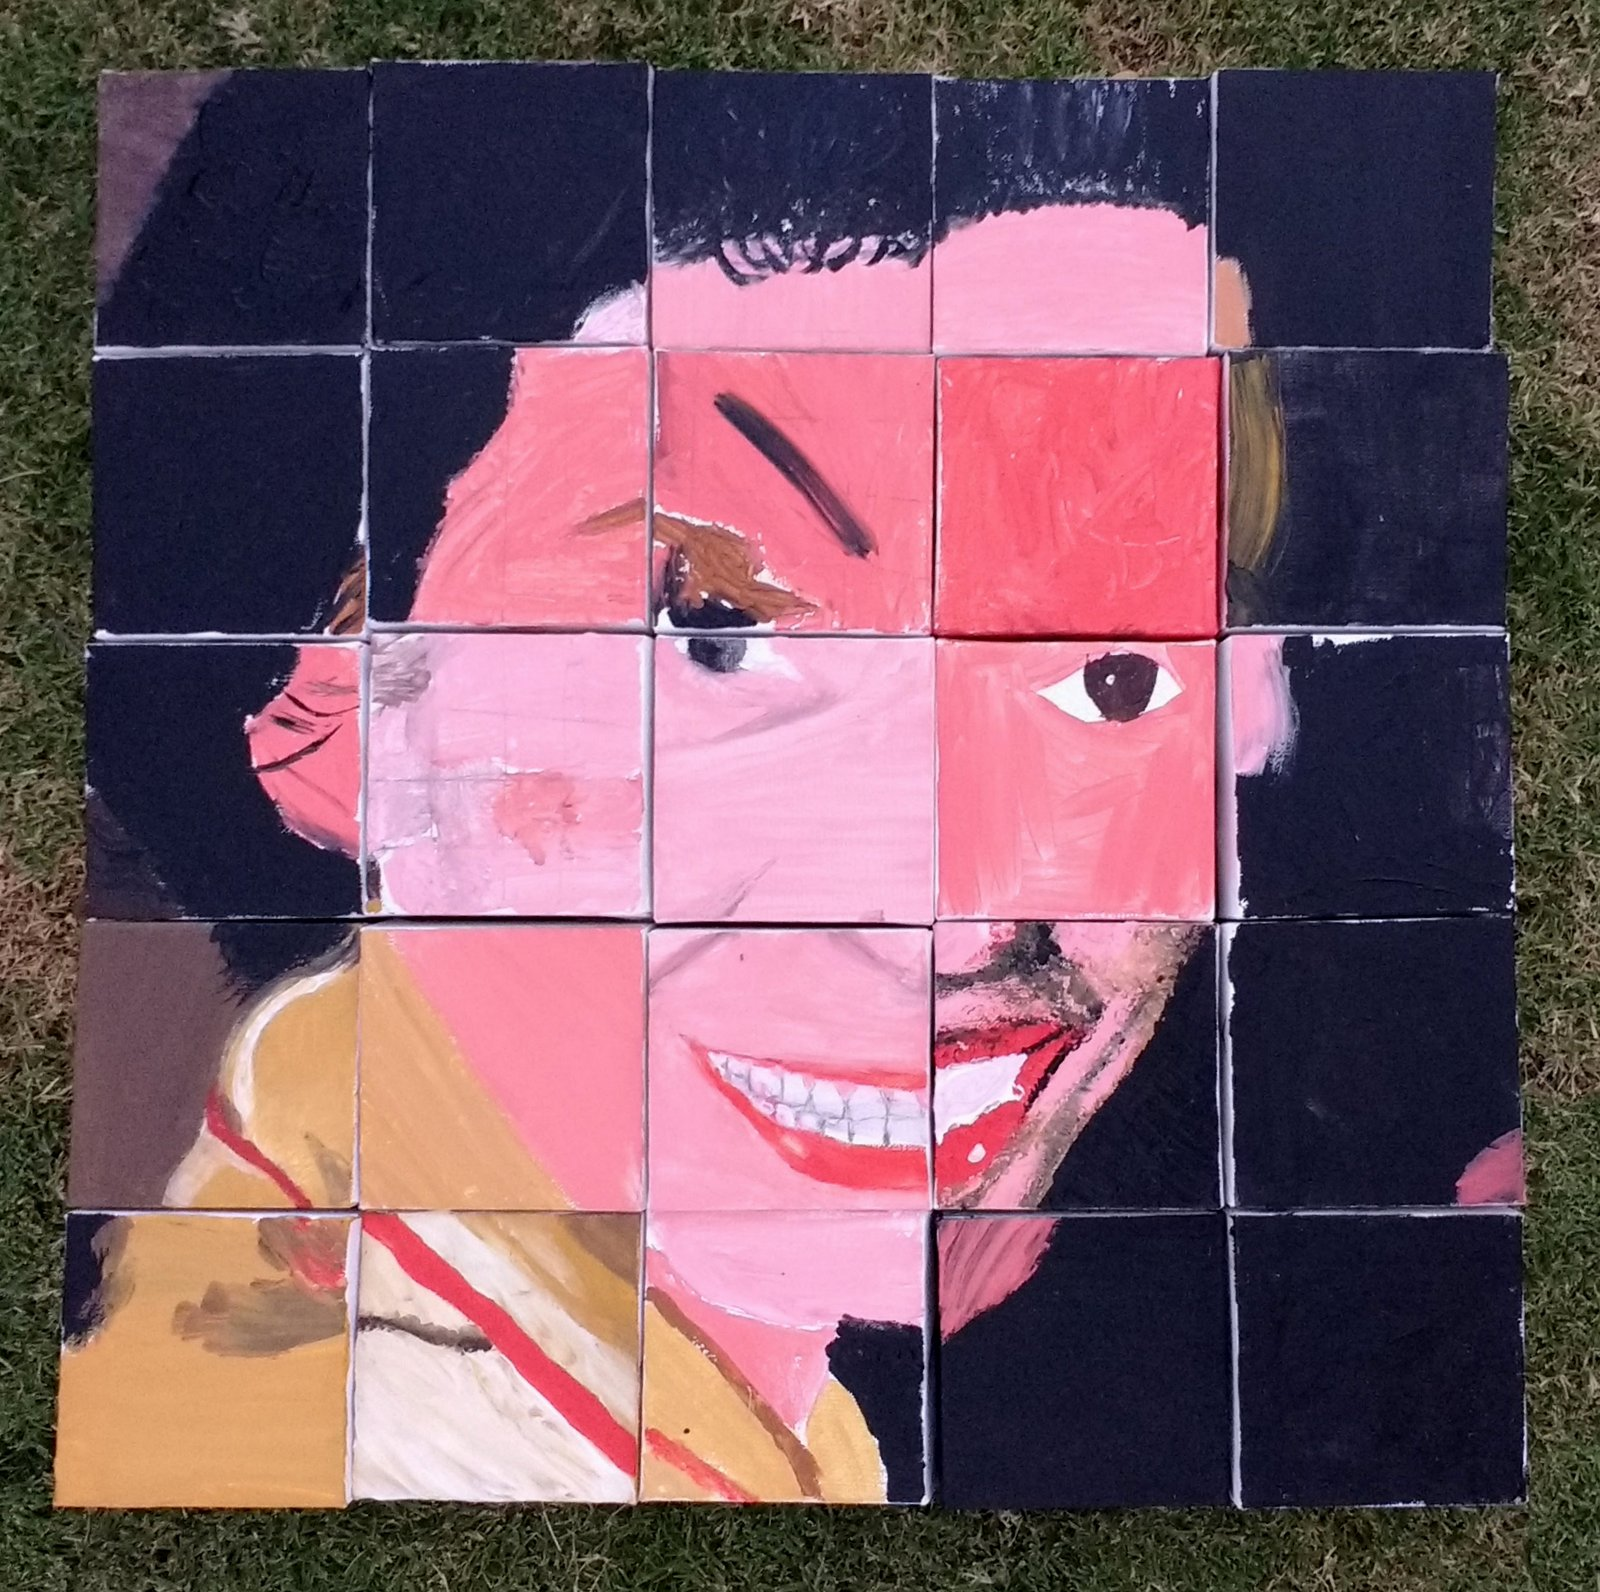 25 small canvases arranged in a 5x5 grid to make a portrait